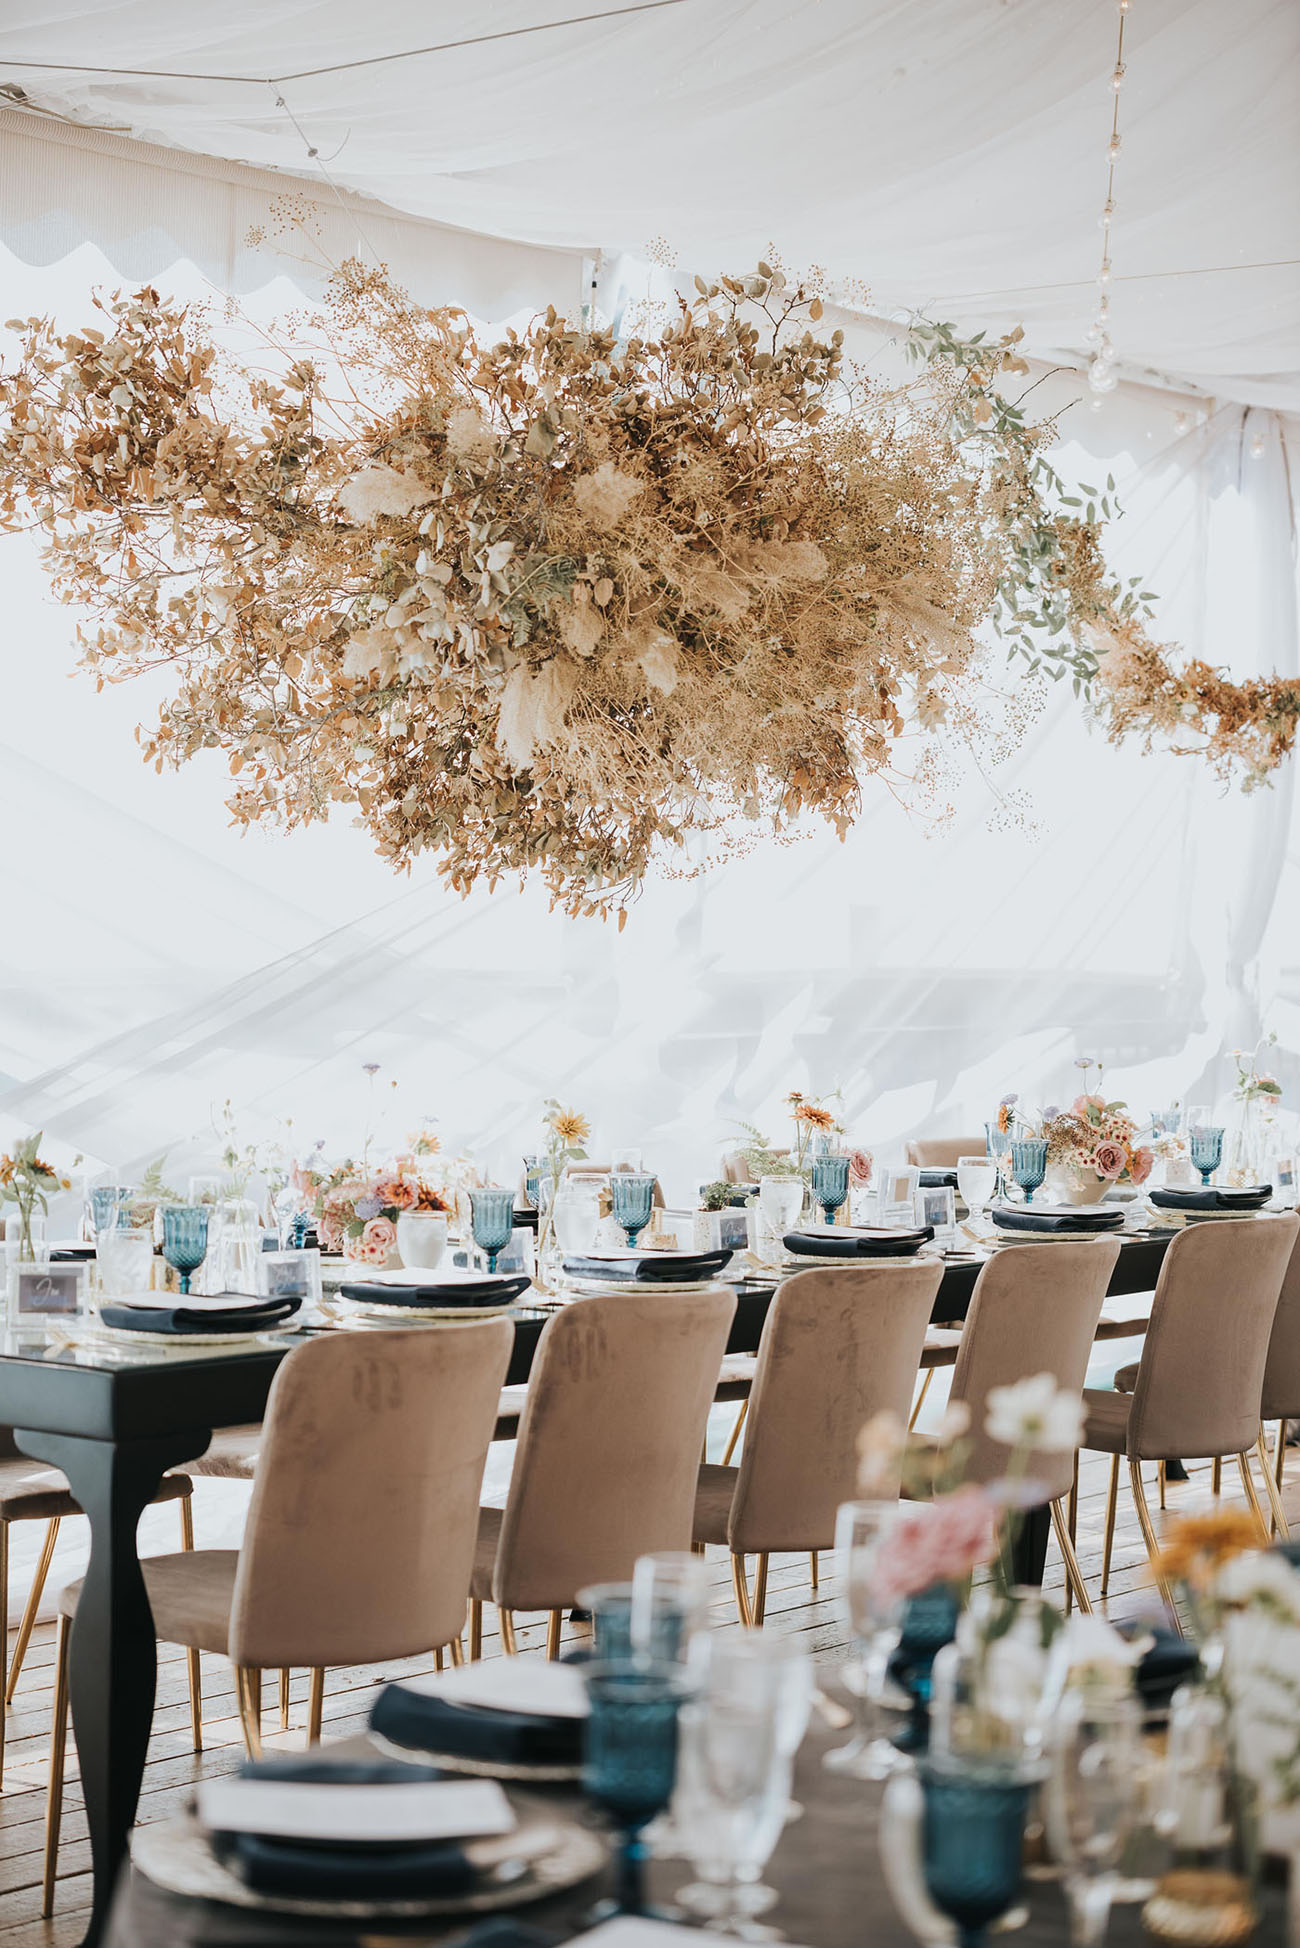 Dried Florals Hanging from Tent Ceiling